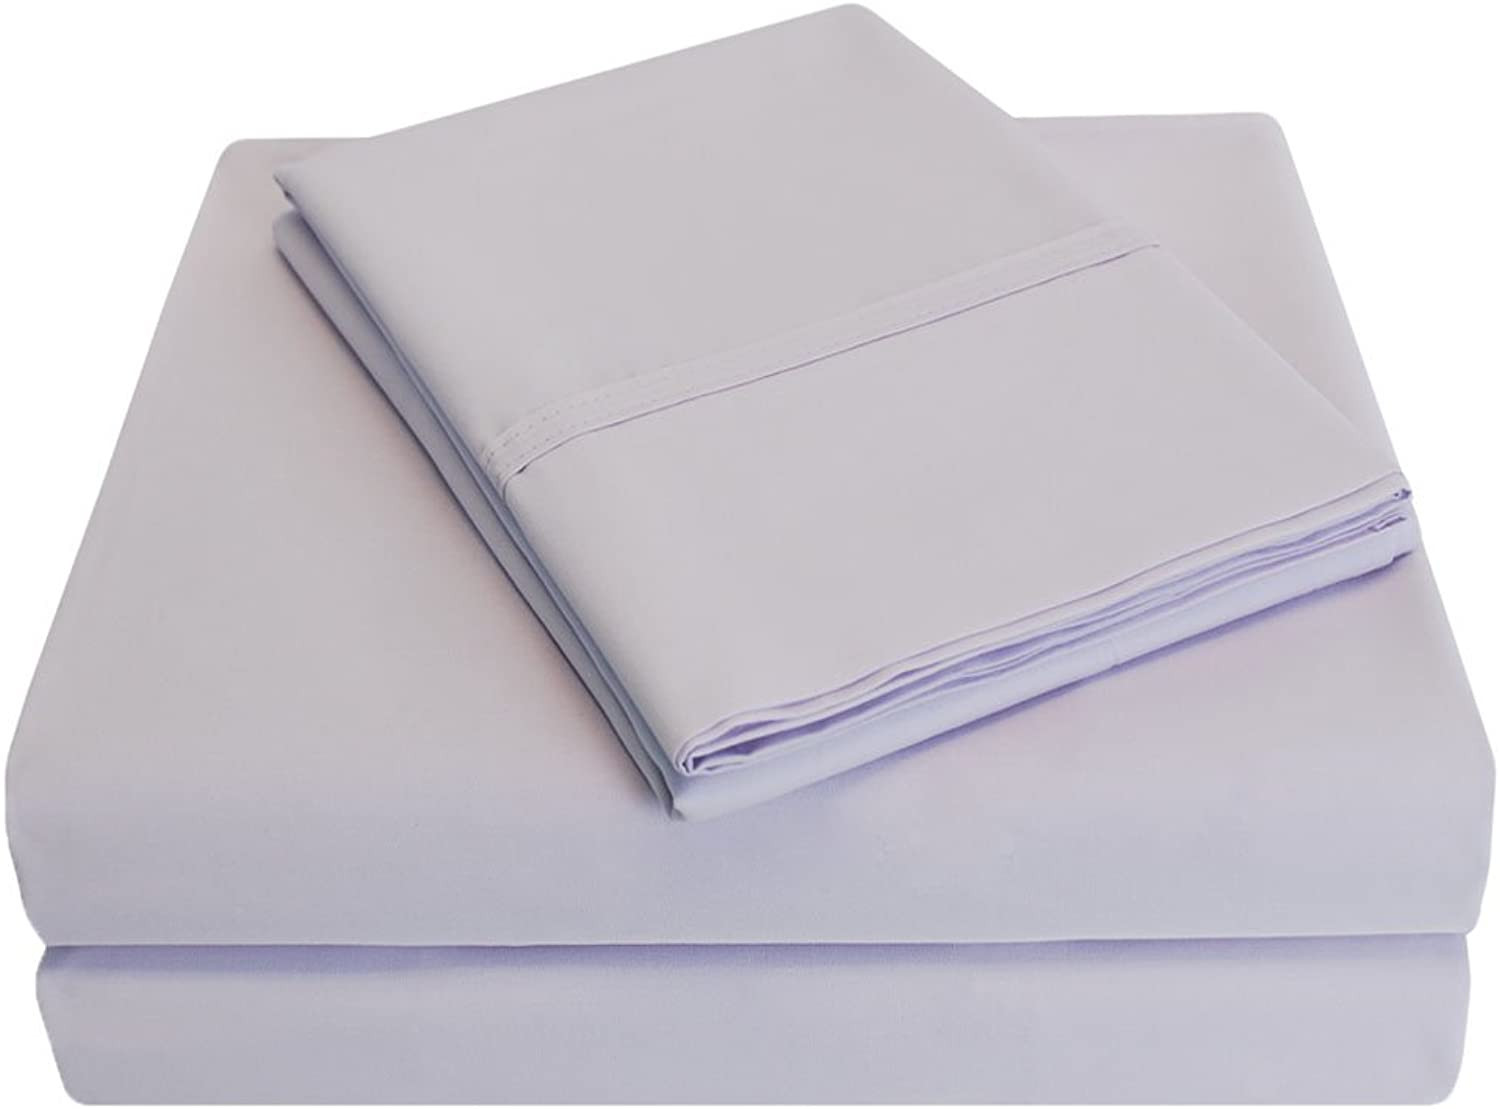 Percale 300 Thread Count 100% Cotton, Deep Pocket, 4-Piece Full Bed Sheet Set, Solid, purplec